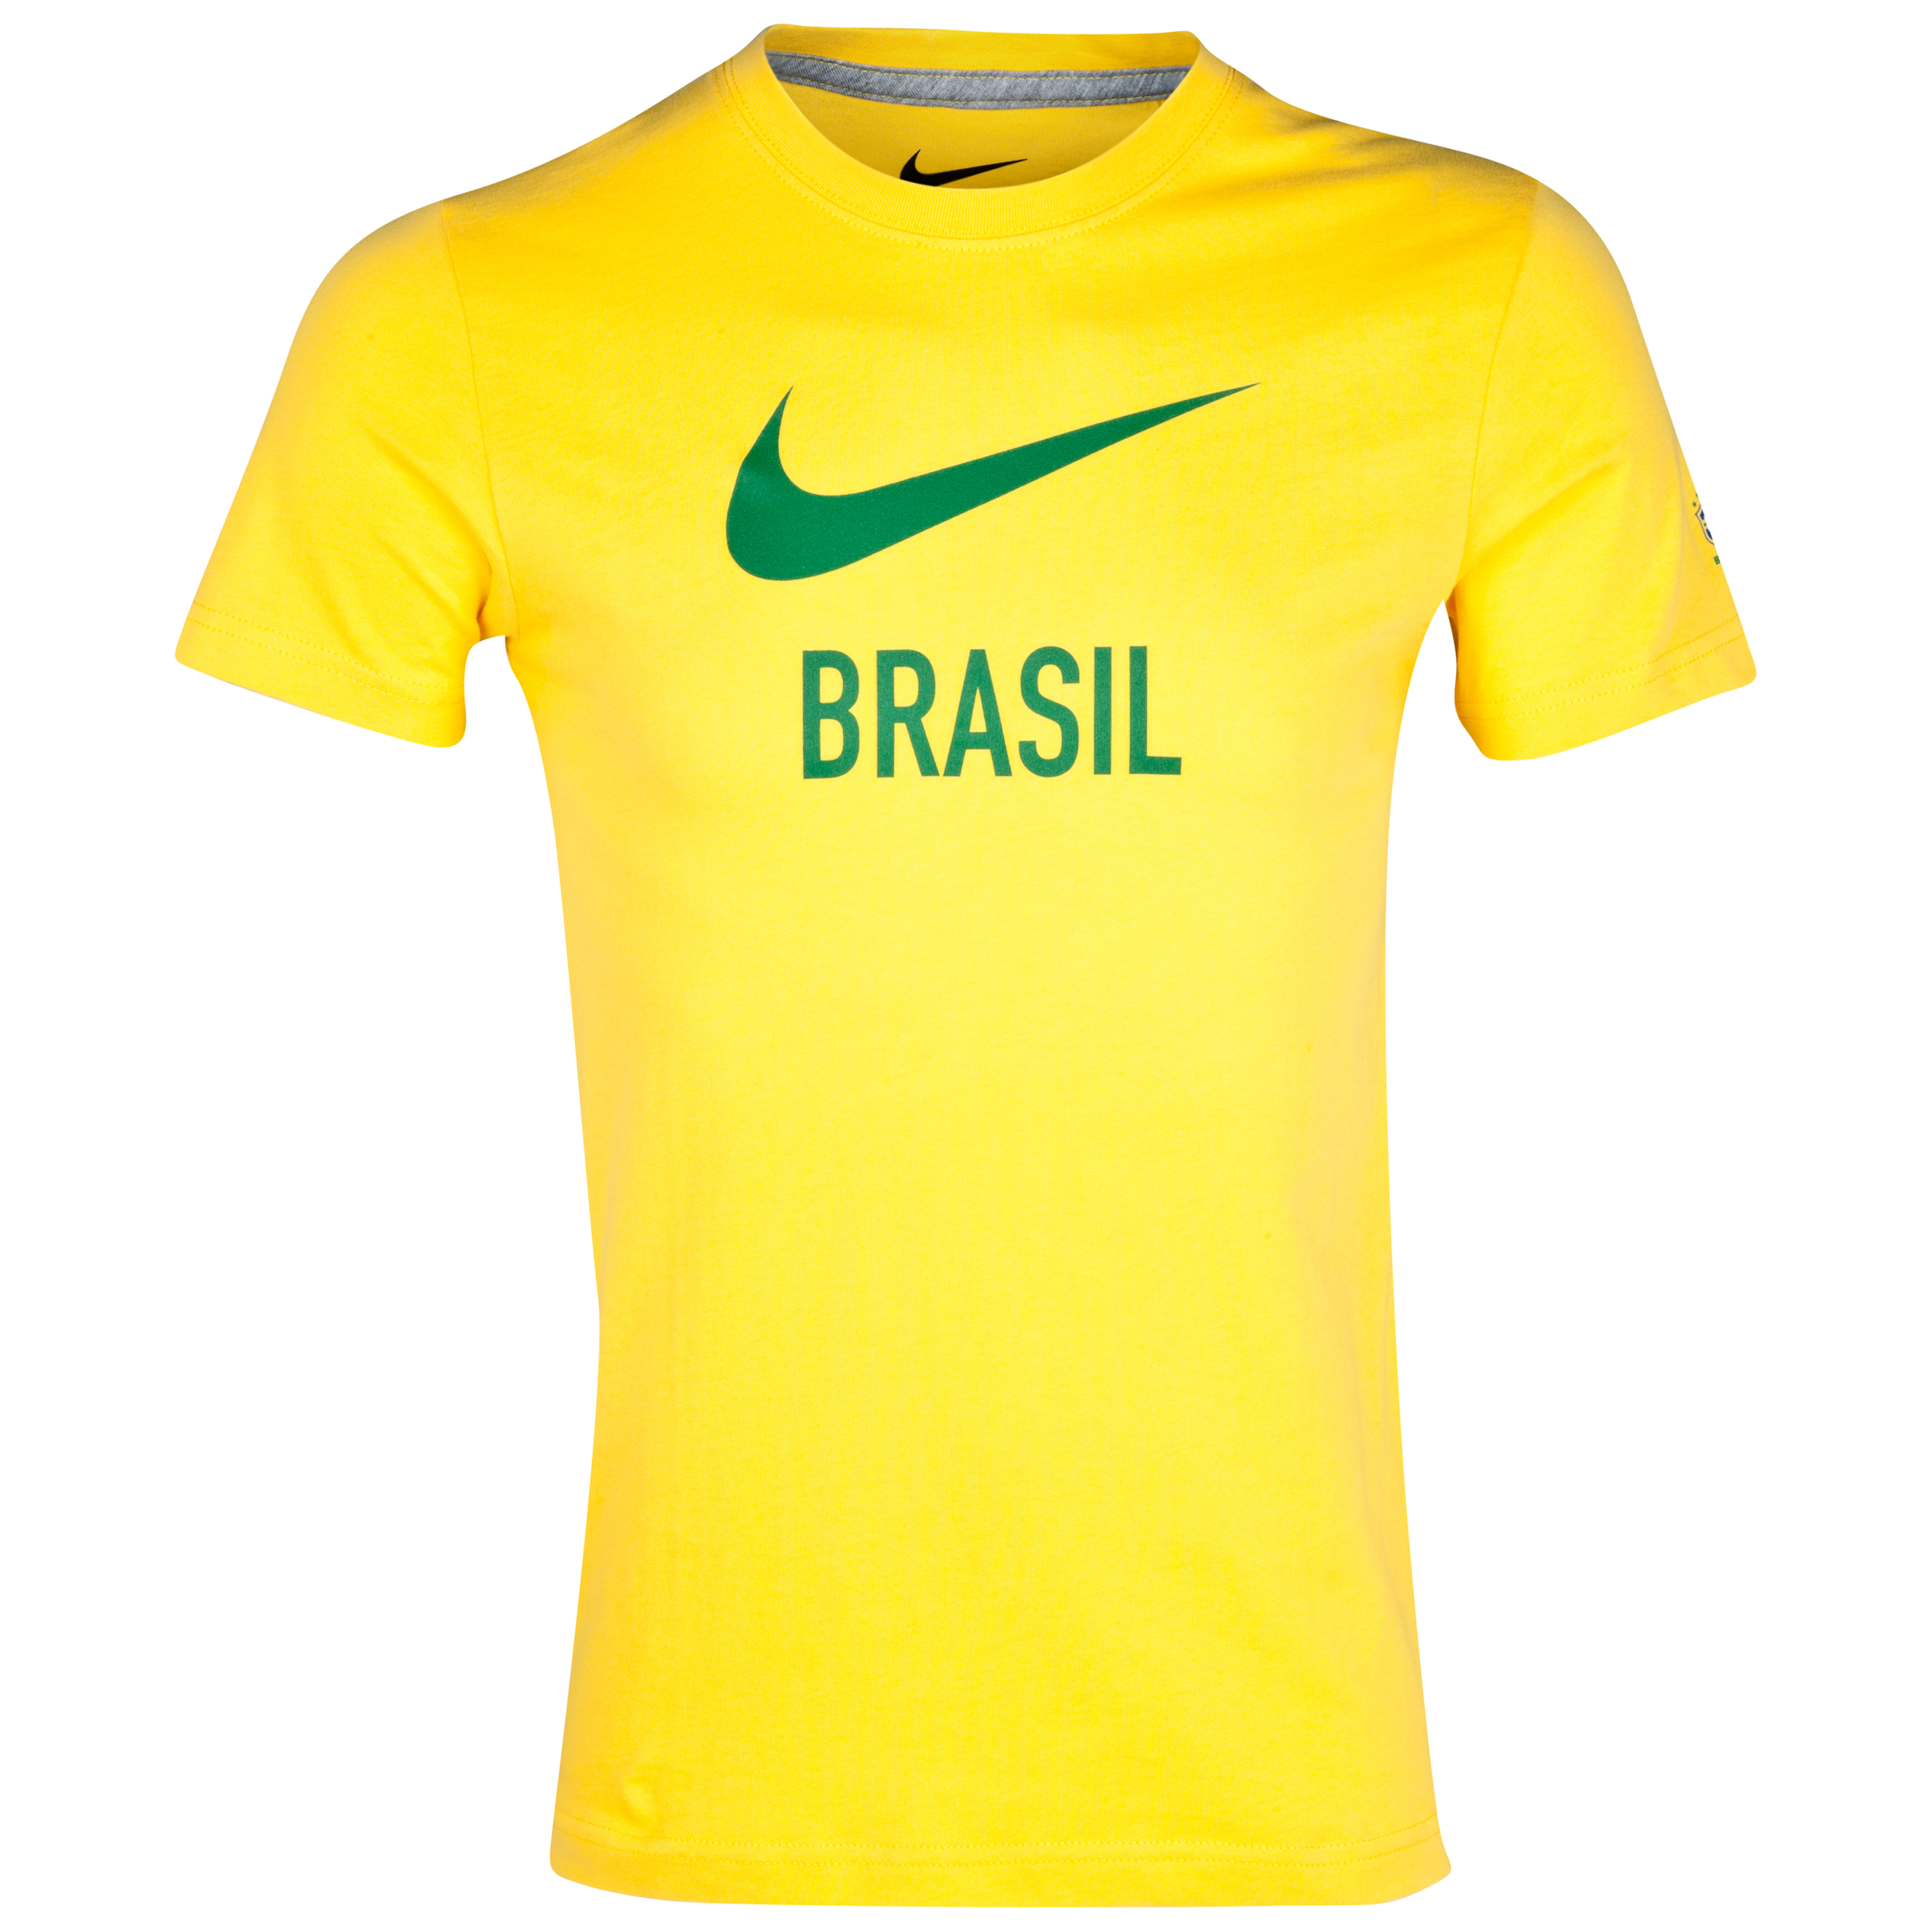 Brazil Core Basic Type T-Shirt - Varsity Maize/Dark Grey Heather